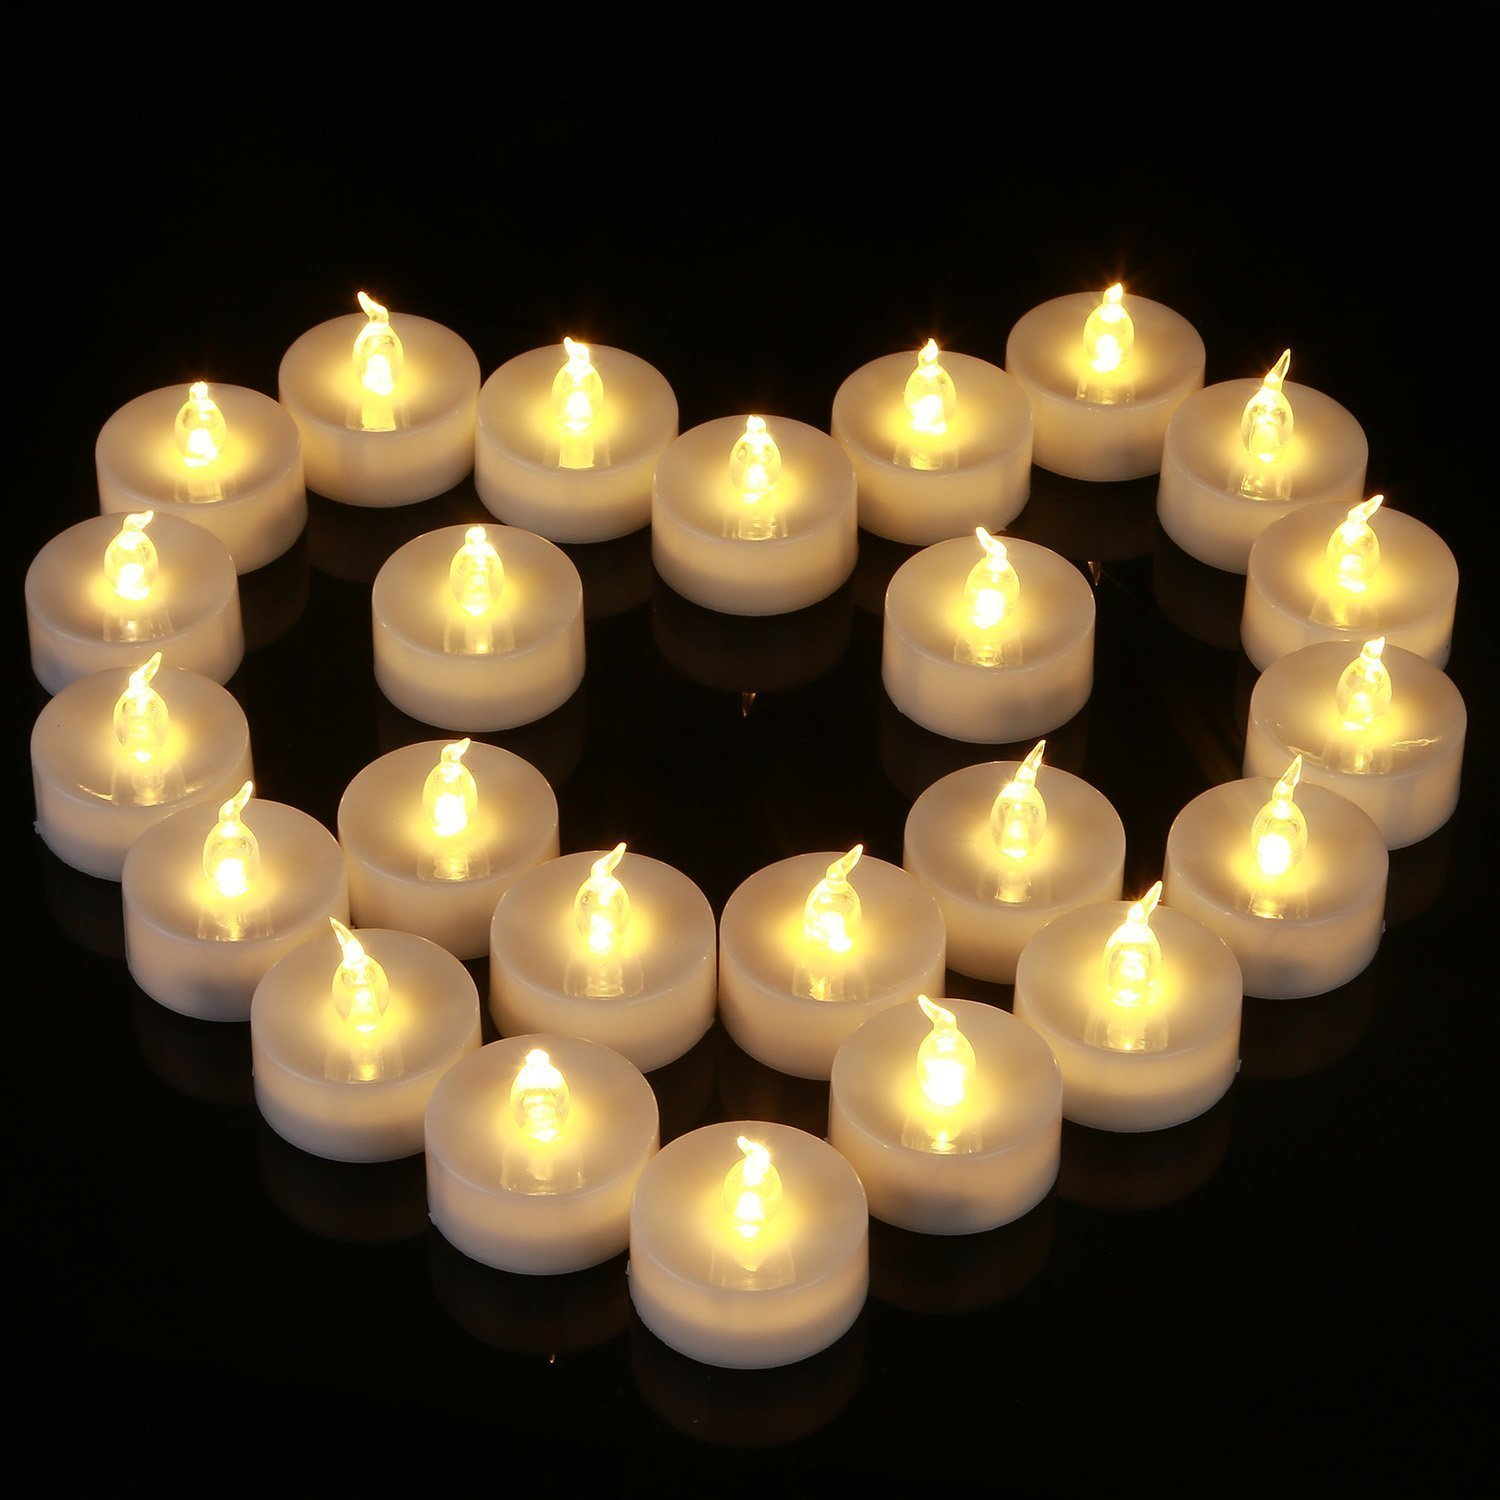 Homemory 24 PACK Warm White Battery LED Tea Lights, Flameless Flickering Tealight Candle, Dia 1.4'' Electric Fake Candle for Votive, Wedding, Party, Table, Dining room, Gift by Homemory (Image #6)